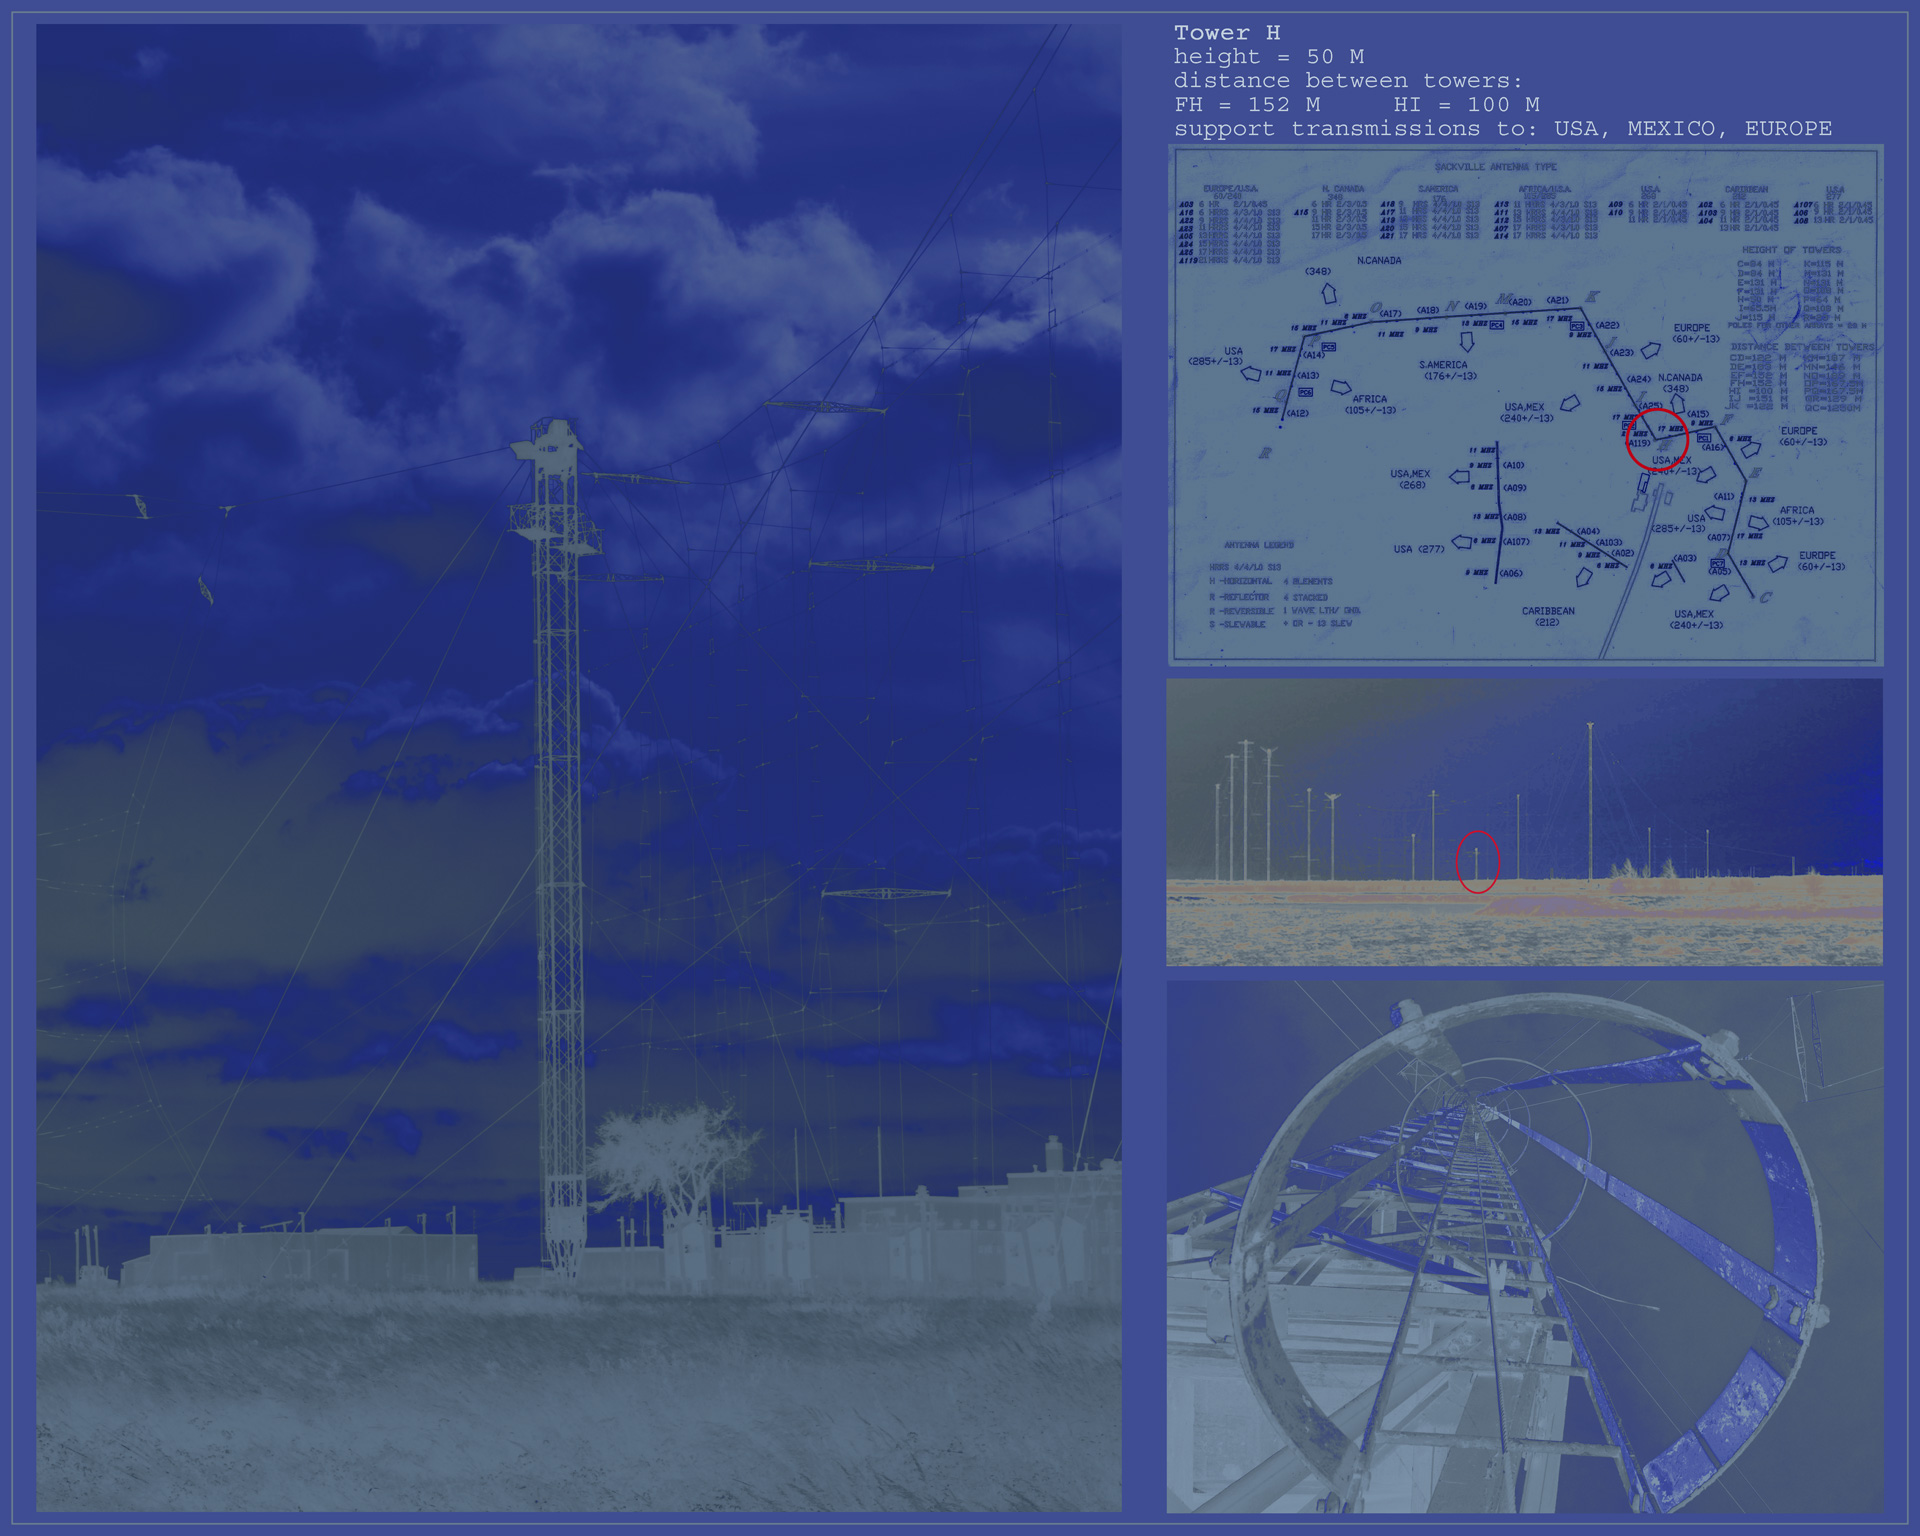 Requiem for Radio: Pulse Decay - H tower